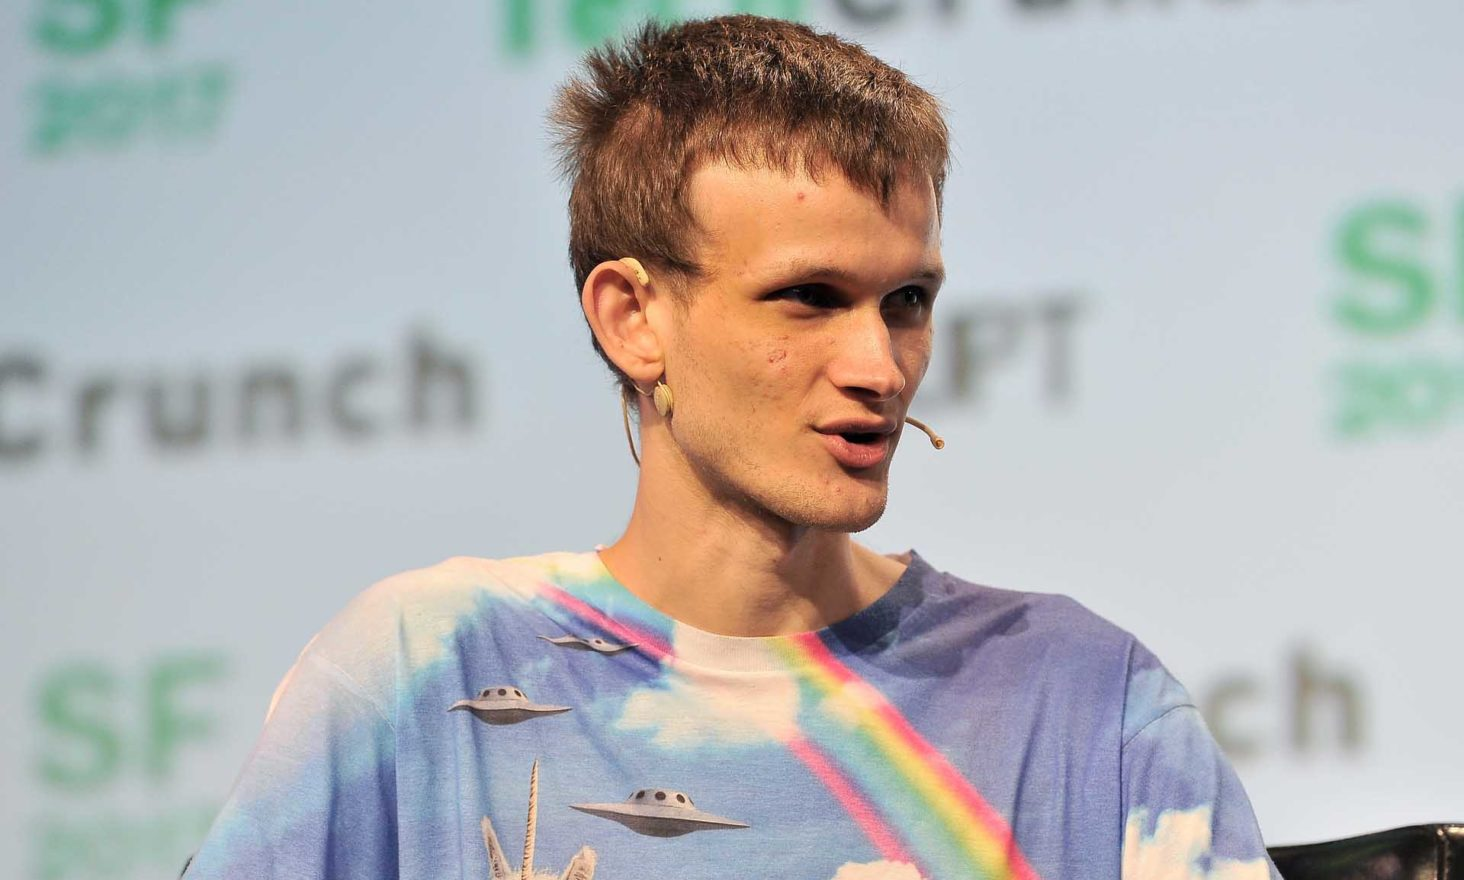 Ethereum Creator Vitalik Buterin Proposes Maximum Ether Supply